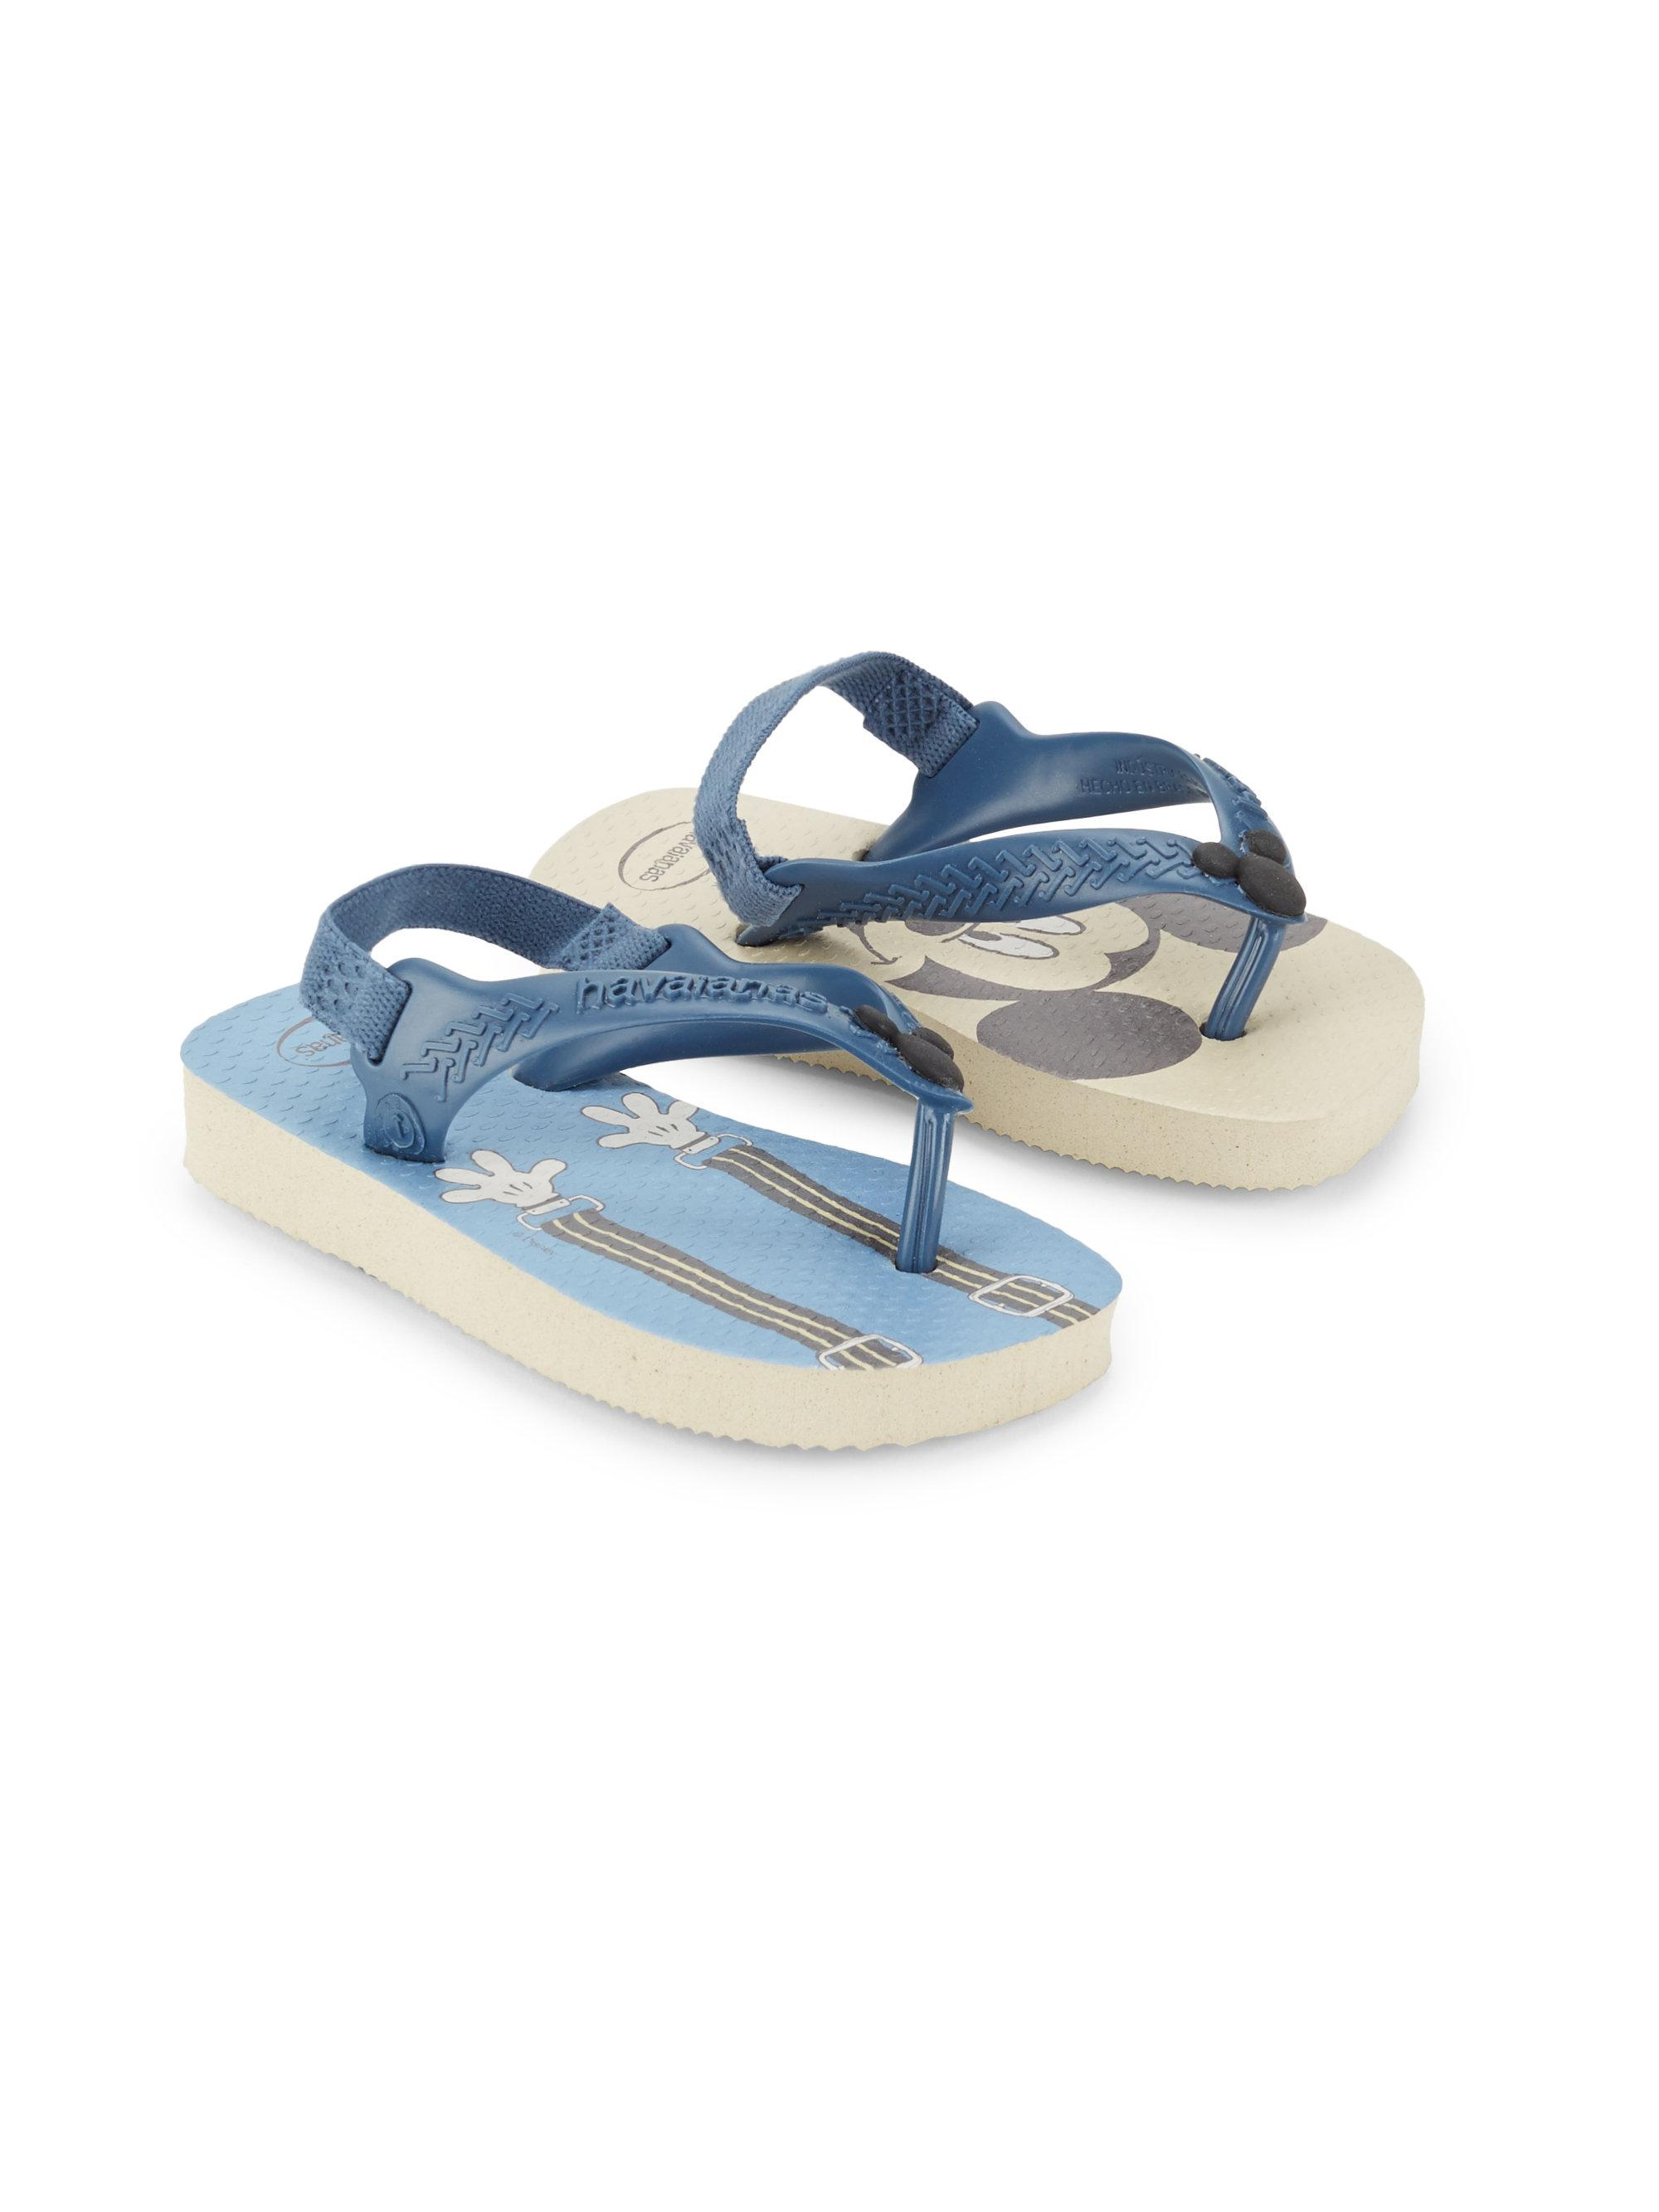 22af1fabceb20 Havaianas Baby s Disney Sandals in Natural - Lyst